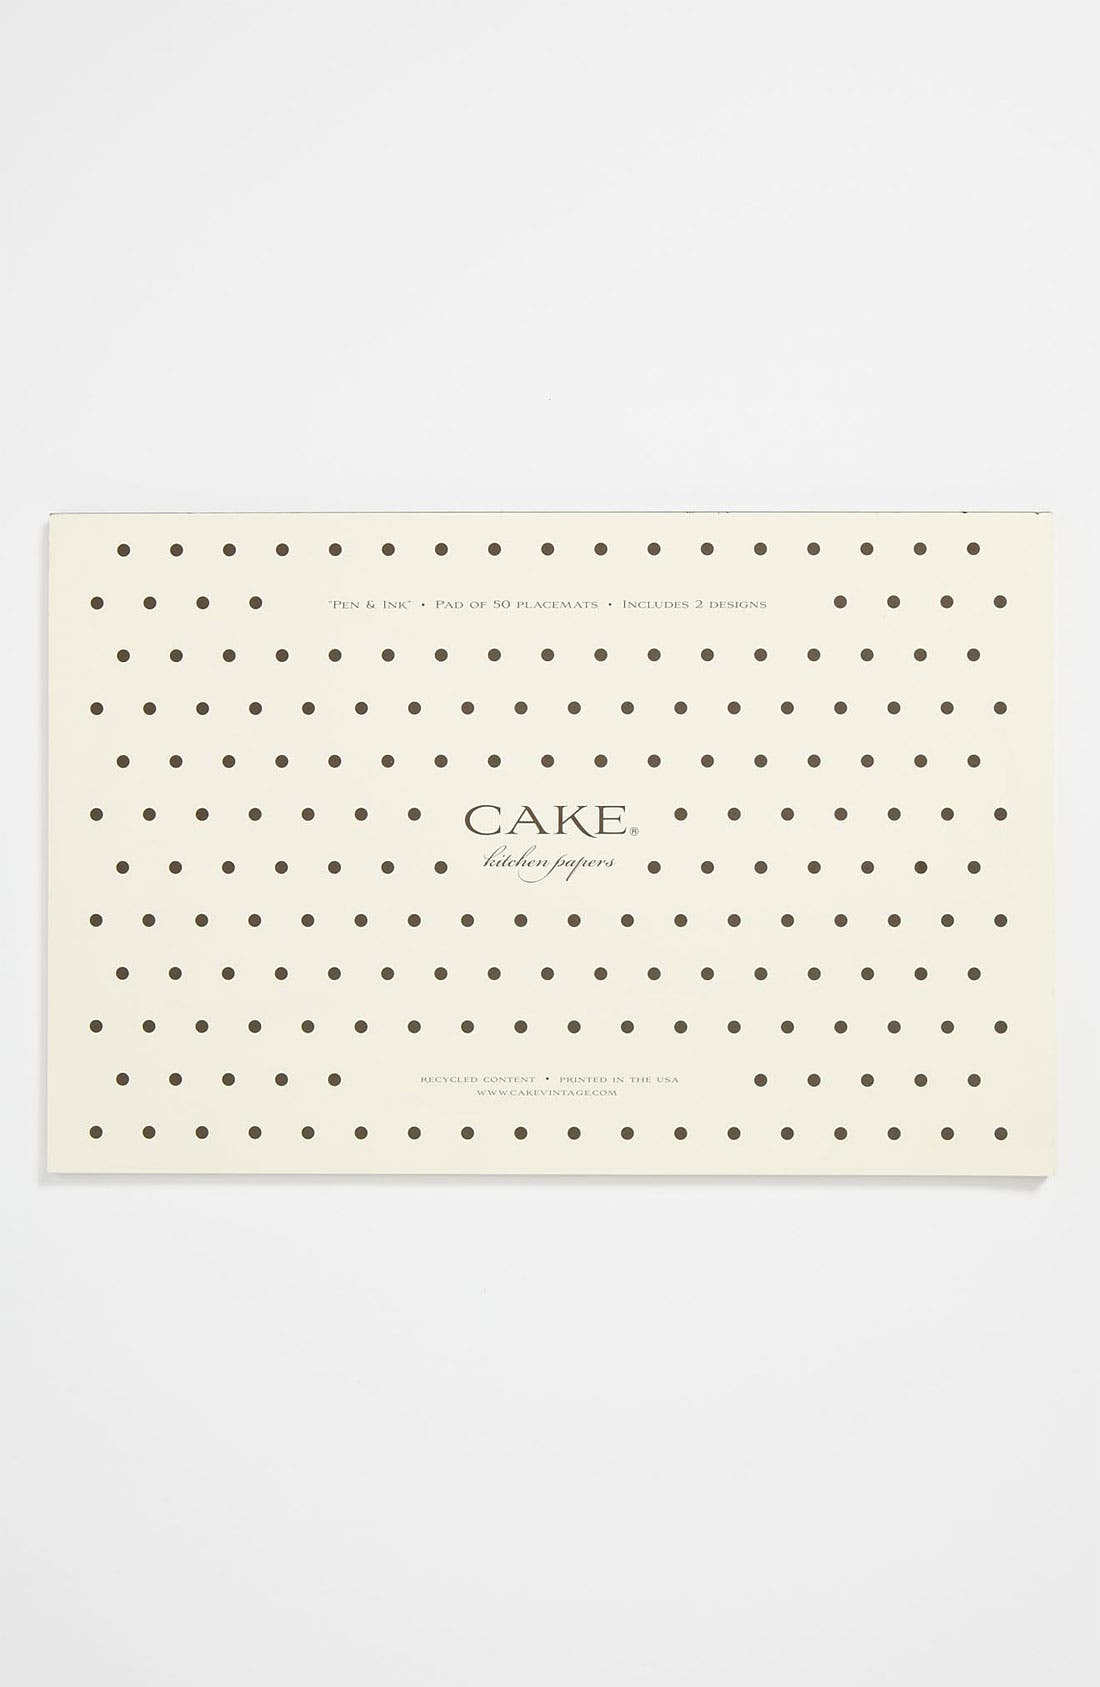 Alternate Image 1 Selected - Kitchen Papers by Cake 'Pen & Ink' Placemats